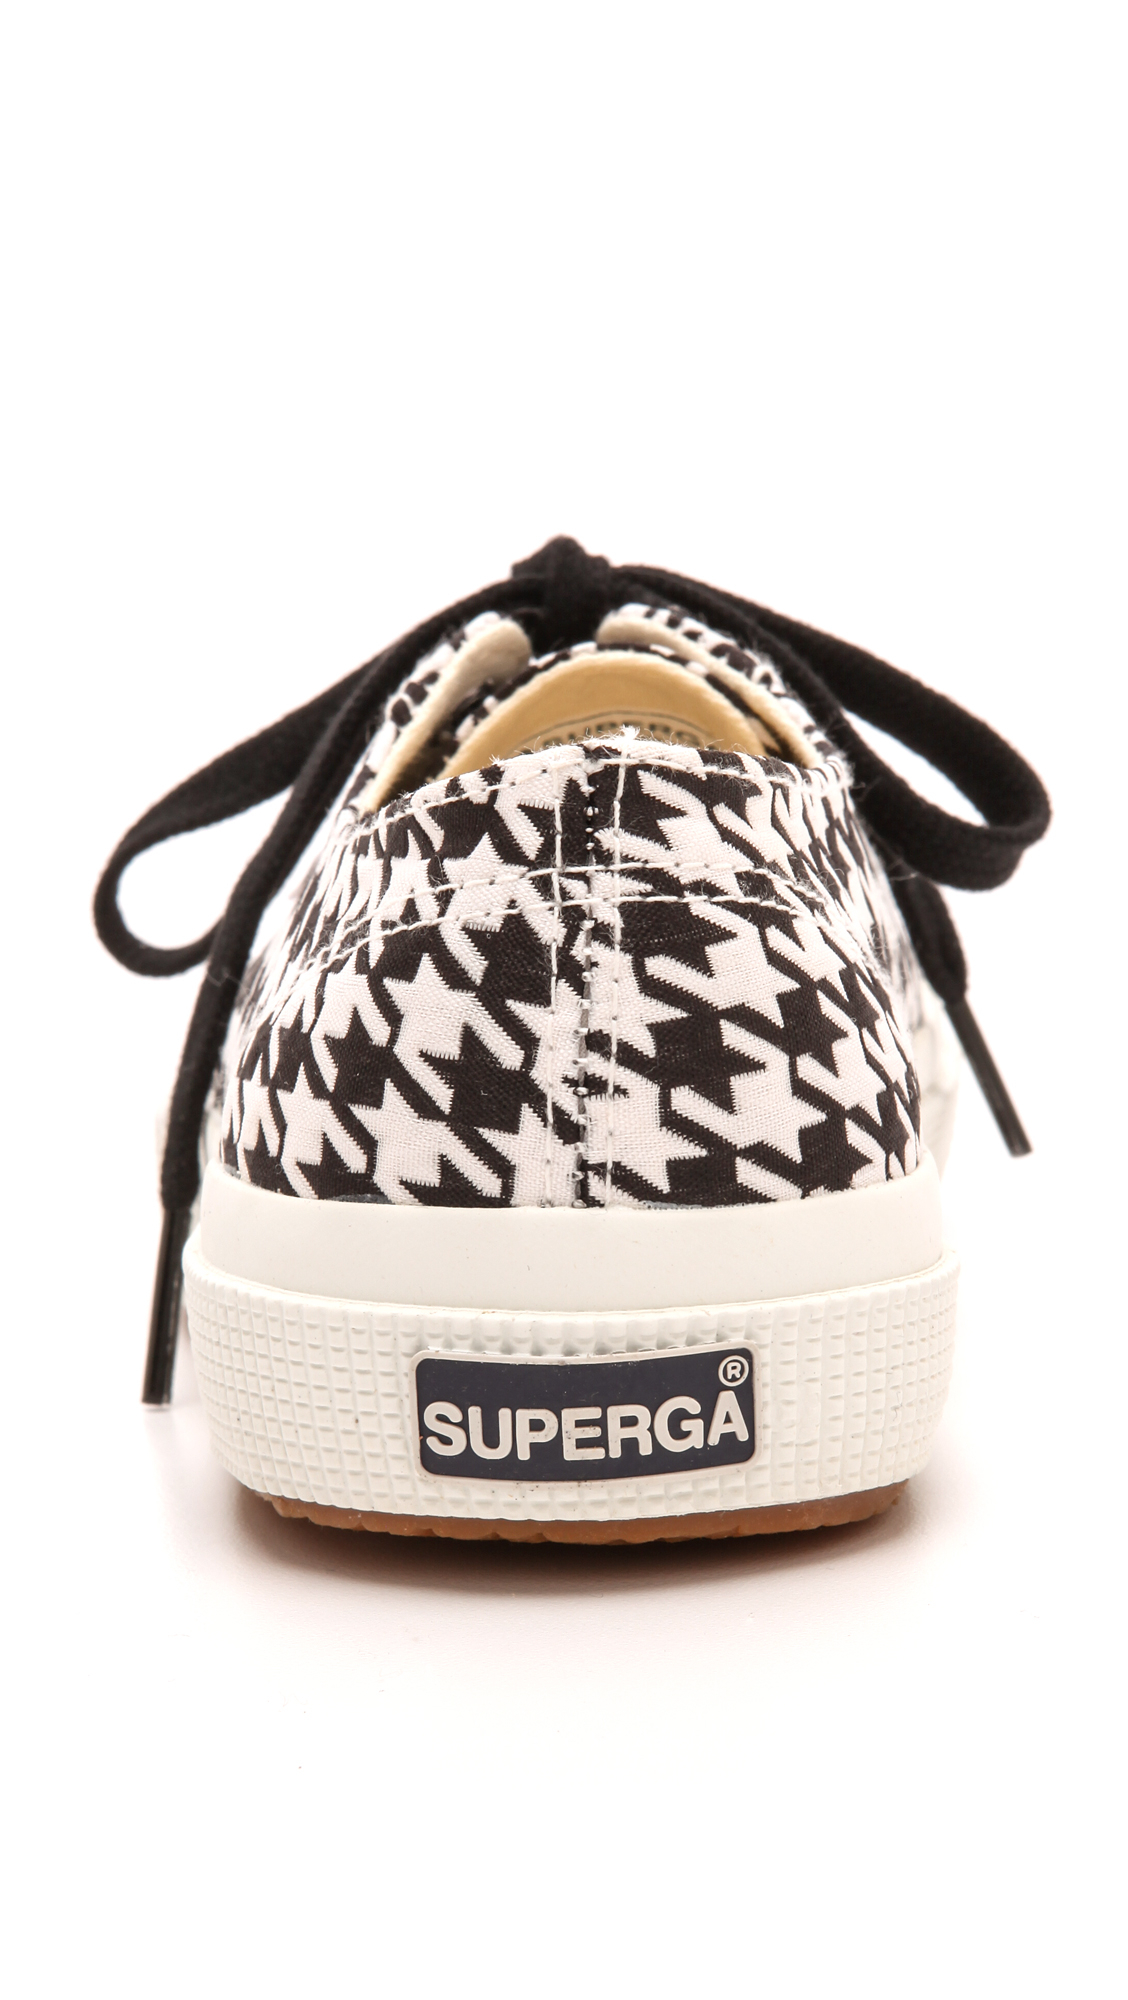 Superga Houndstooth Canvas Sneakers in Black/White (Black)